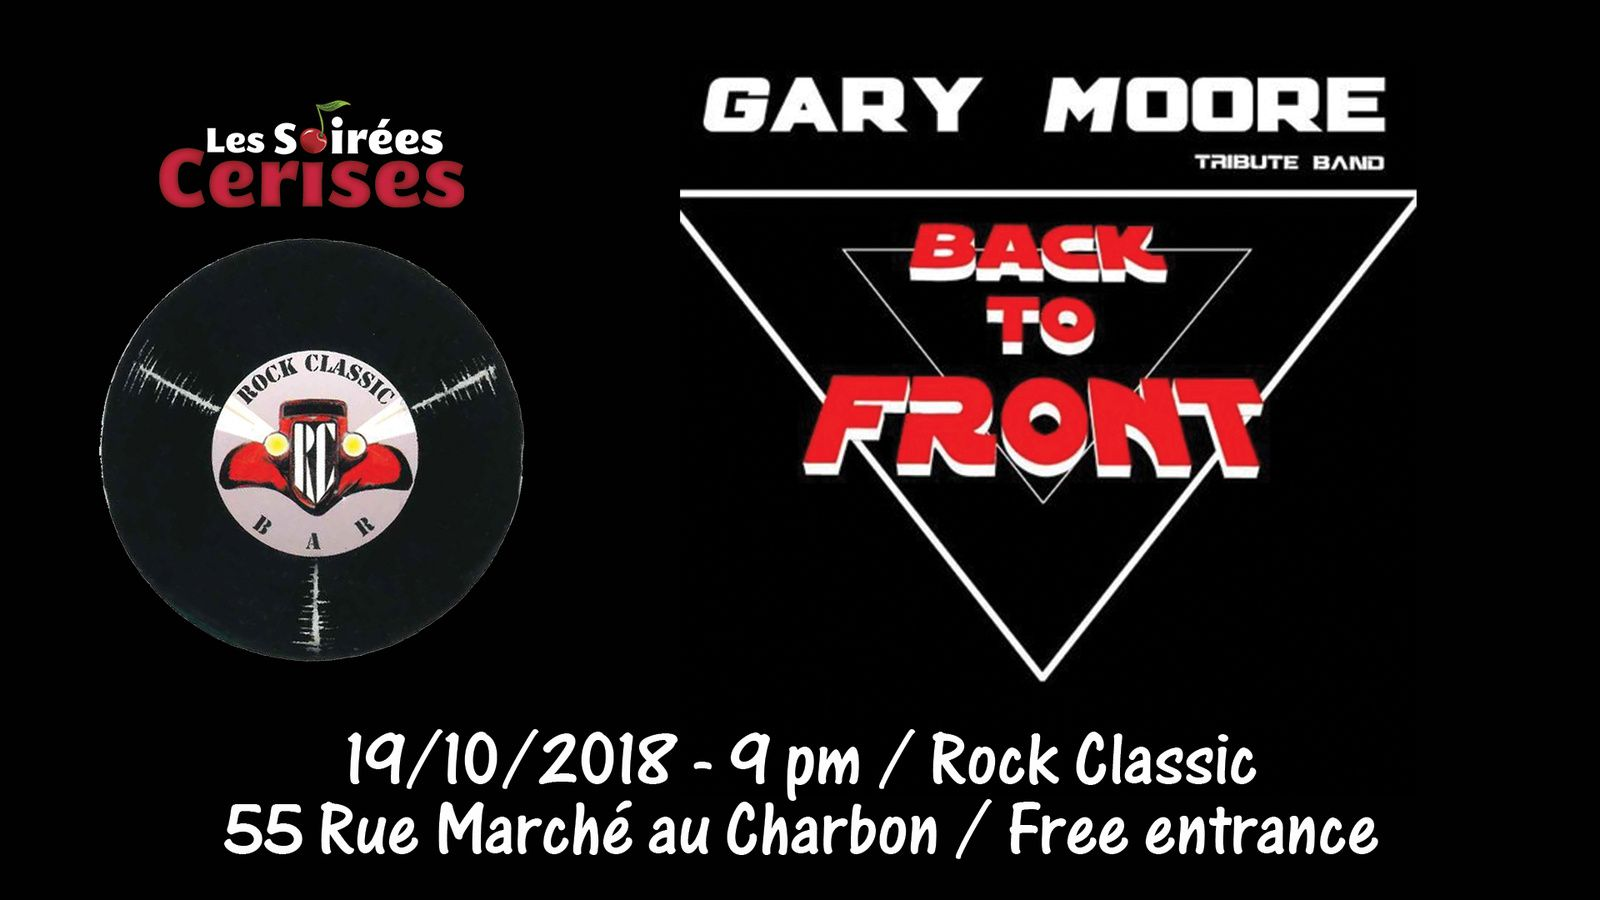 ▶ Back to Front (Gary Moore tribute band) @ Rock Classic - 19/10/2018 - 21h00 - Entrée gratuite/Free entrance